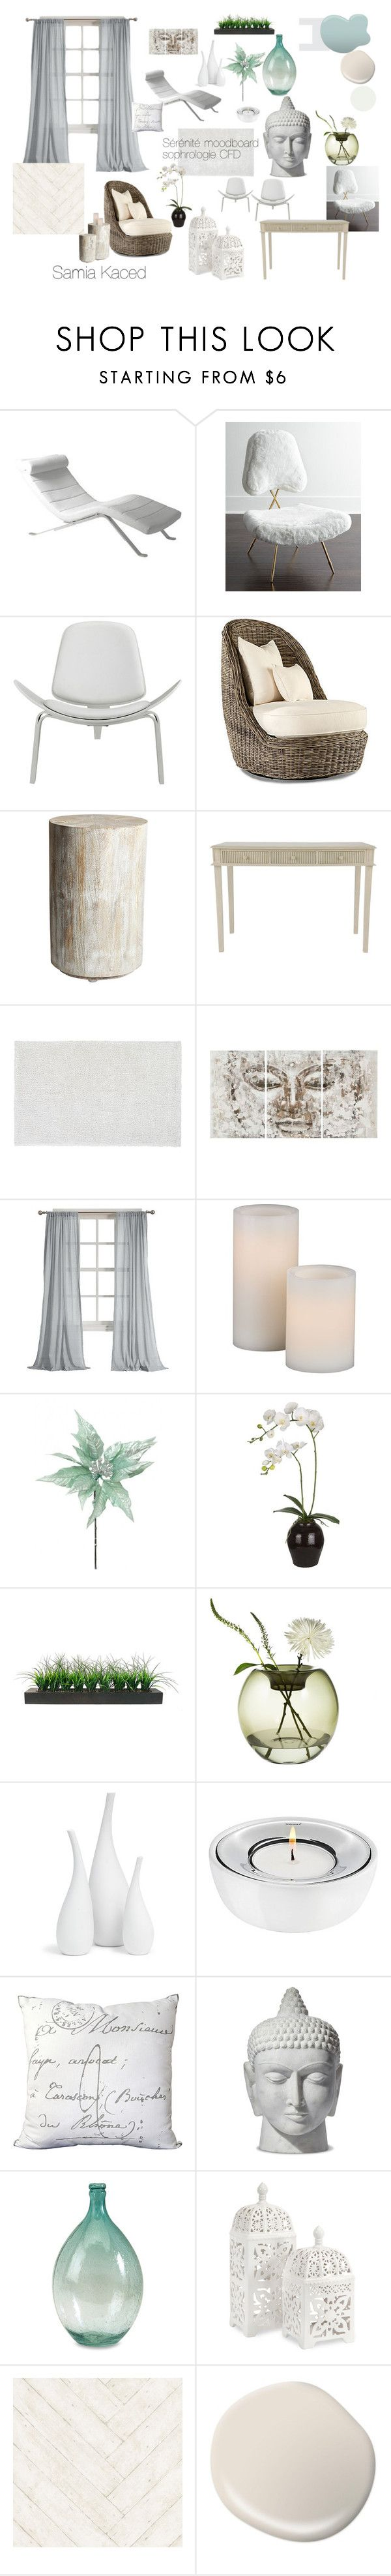 """""""MoodBoard pour cabinet de sophrologue CFD"""" by sam-kaced on Polyvore featuring interior, interiors, interior design, home, home decor, interior decorating, Eurø Style, Jonathan Adler, Steel   Lark and Lane Venture"""